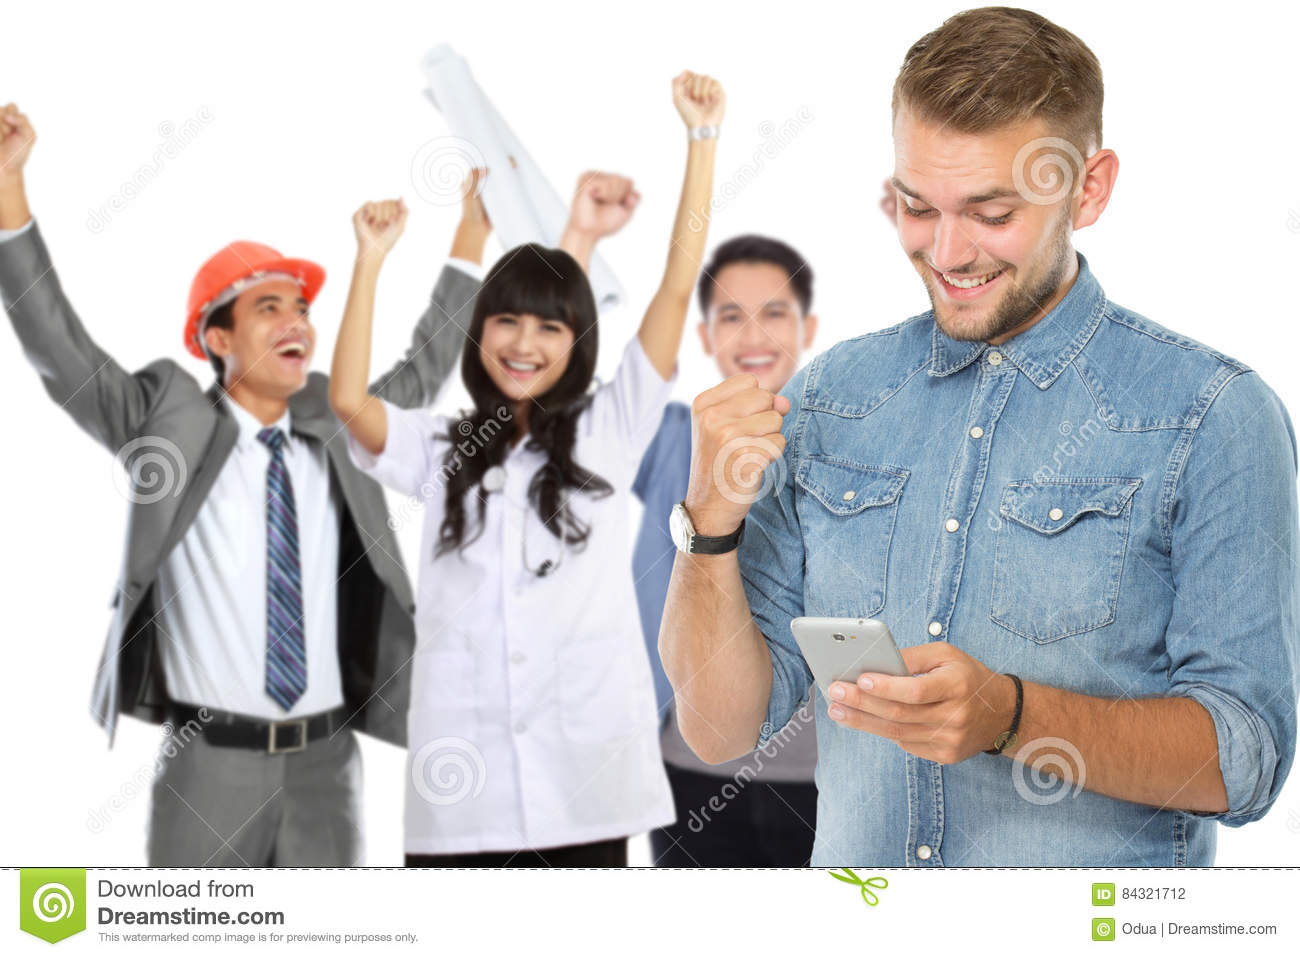 Excited man receiving a text message